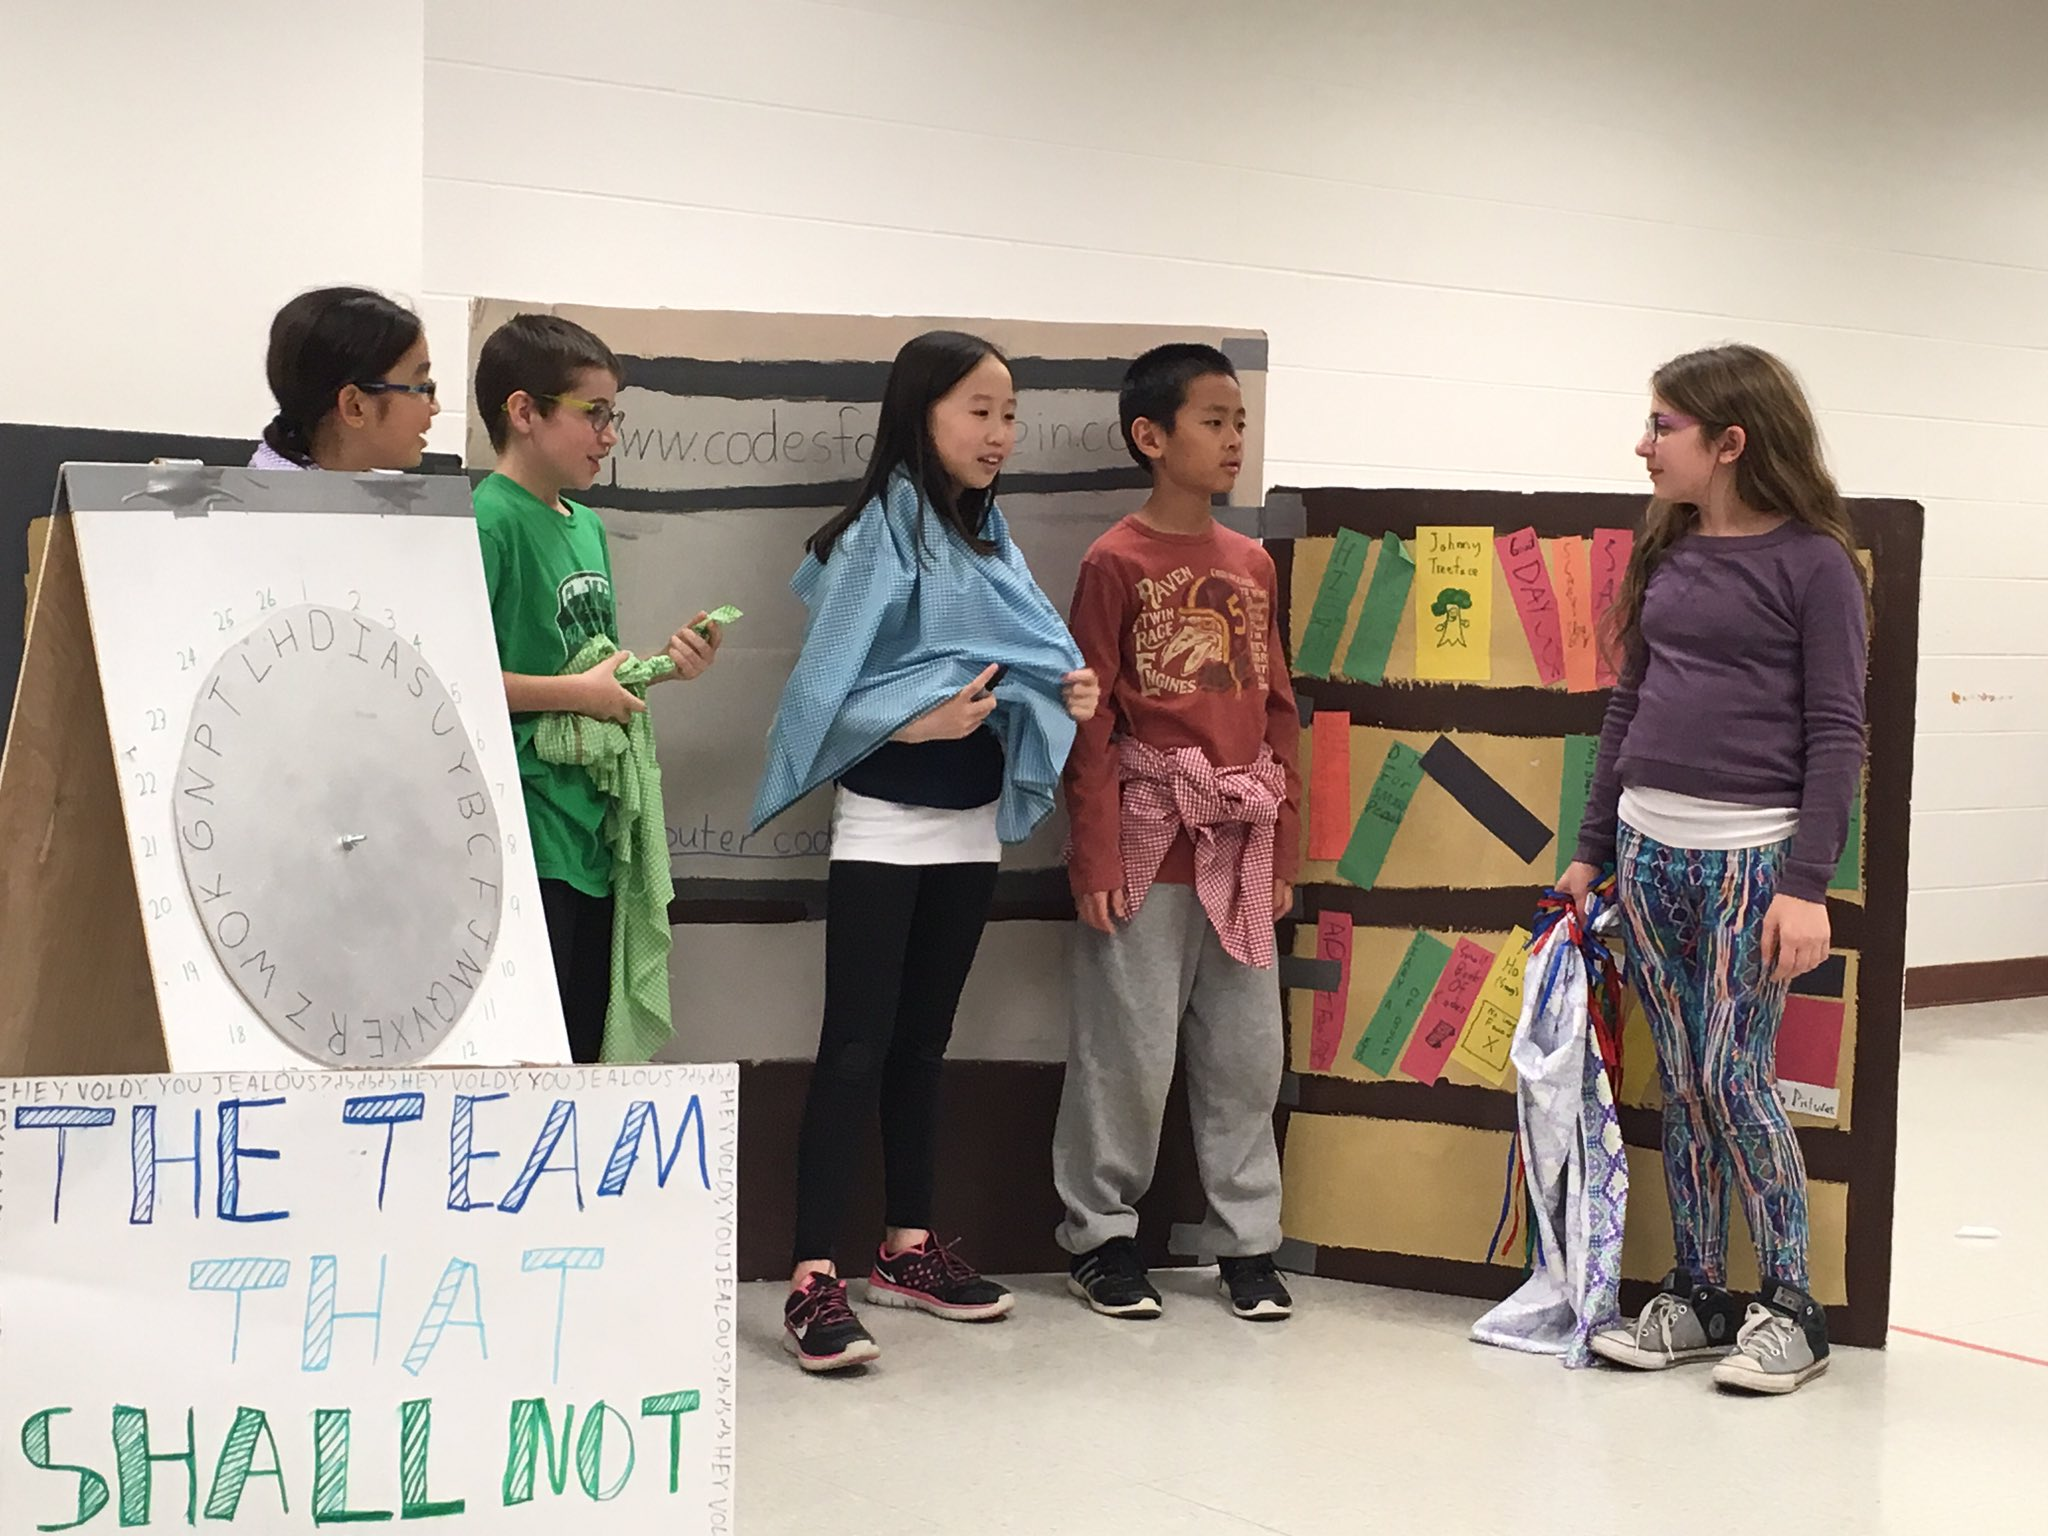 Breaking news! #idodi team saves library - great performance #sp109 The Team Who Shall Not Be Named. #engage109 https://t.co/U4I3Rv7eyB